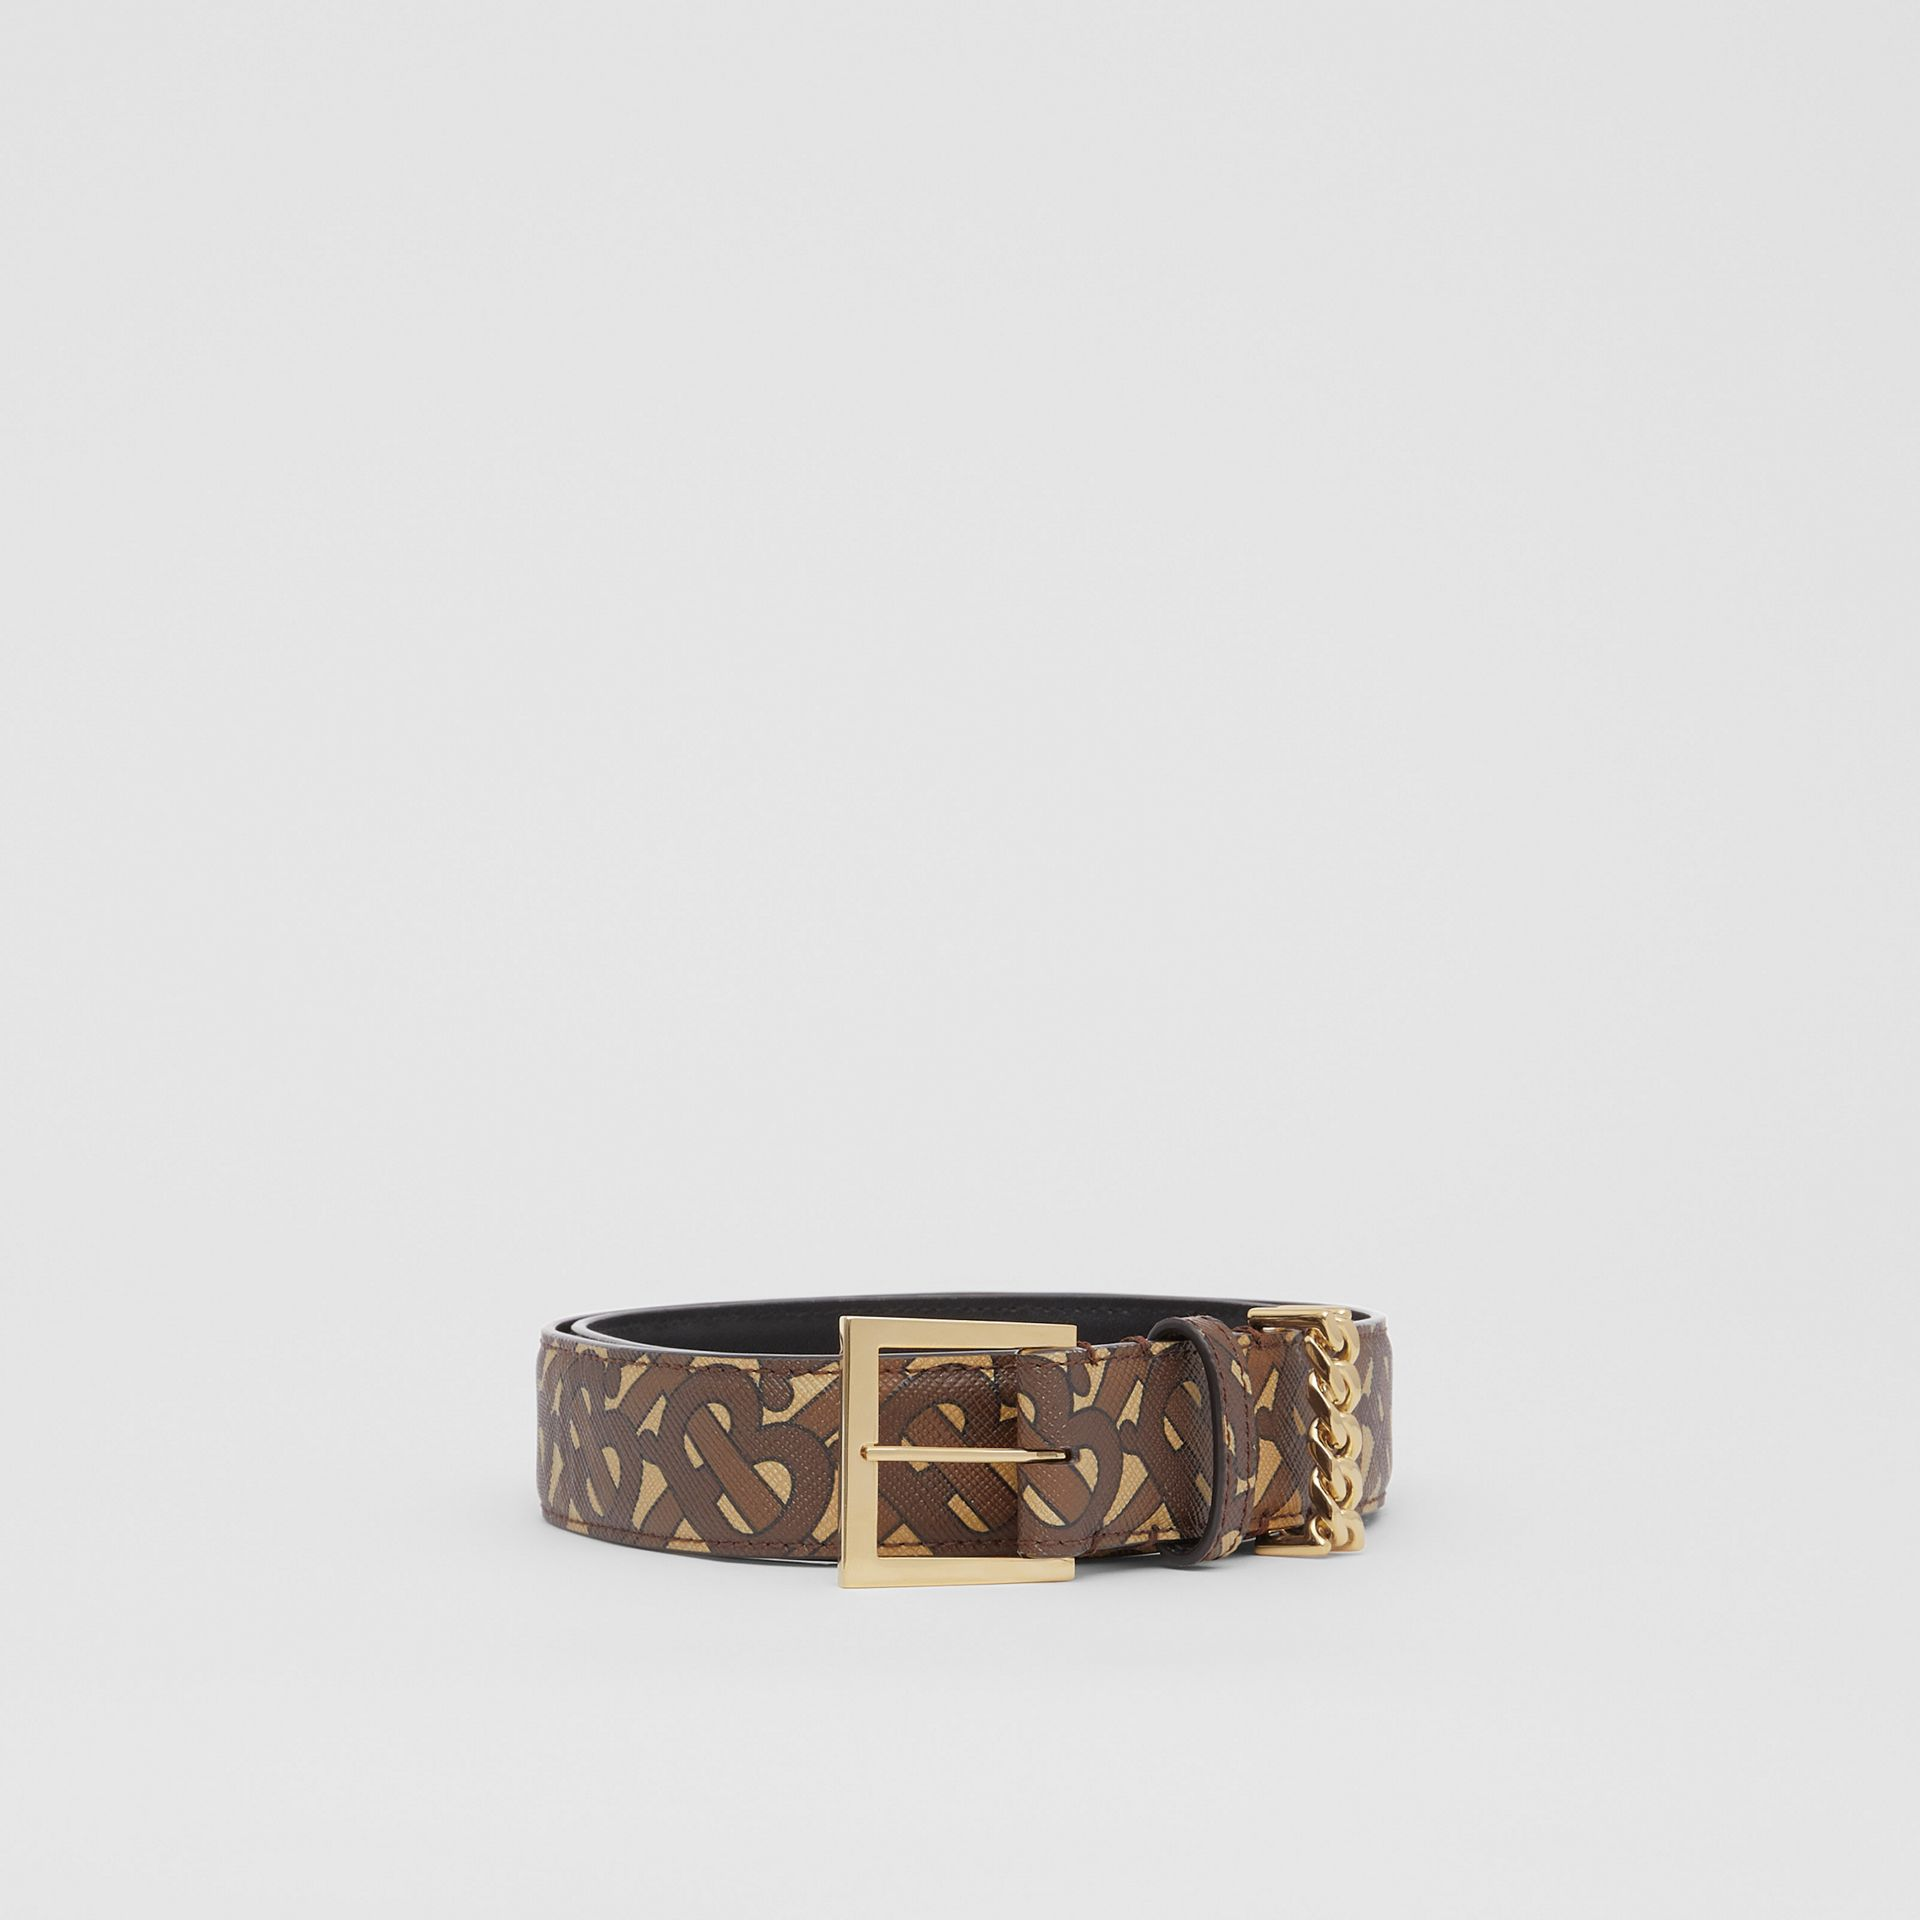 Chain Detail Monogram Print E-canvas Belt in Bridle Brown - Women | Burberry - gallery image 3